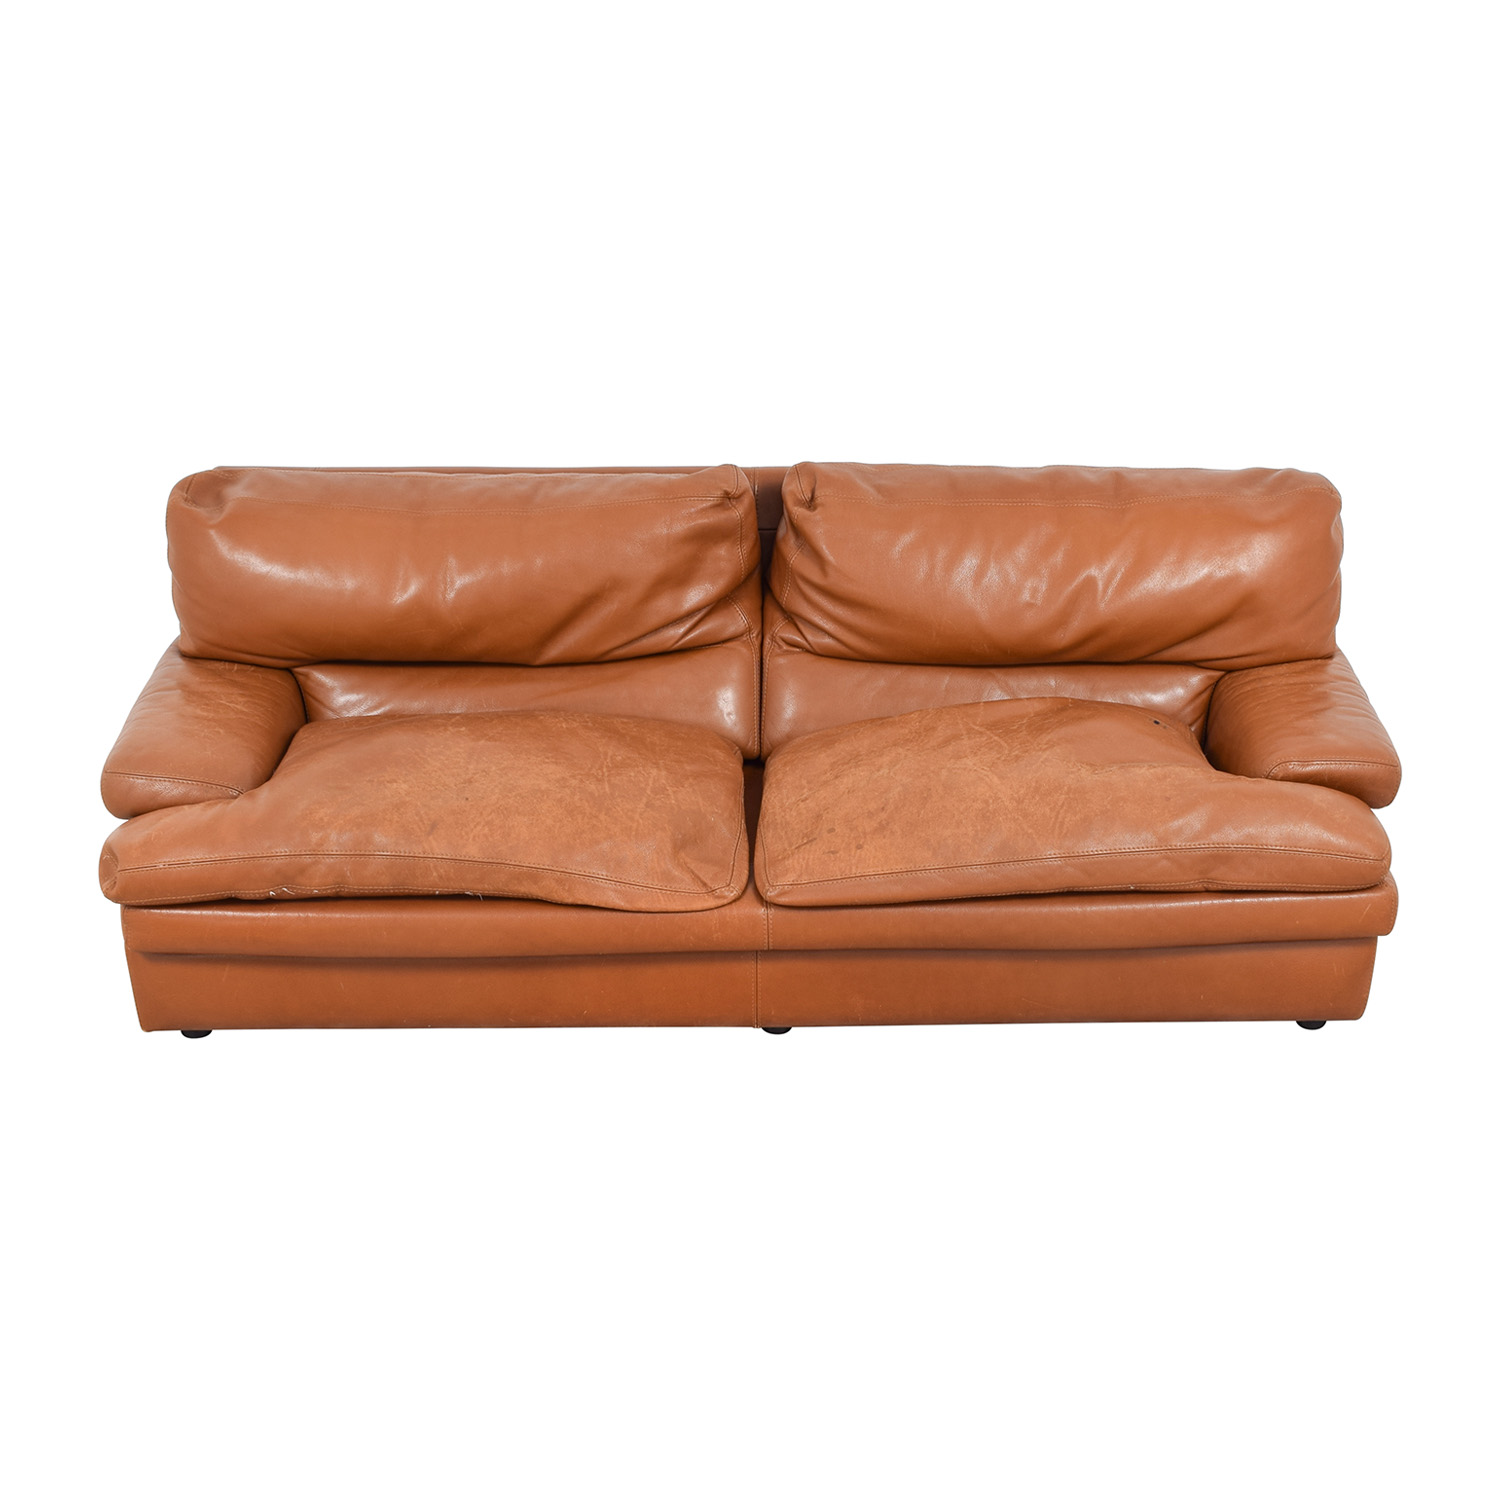 Roche Bobois Burnt Orange Leather Sofa Clic Sofas